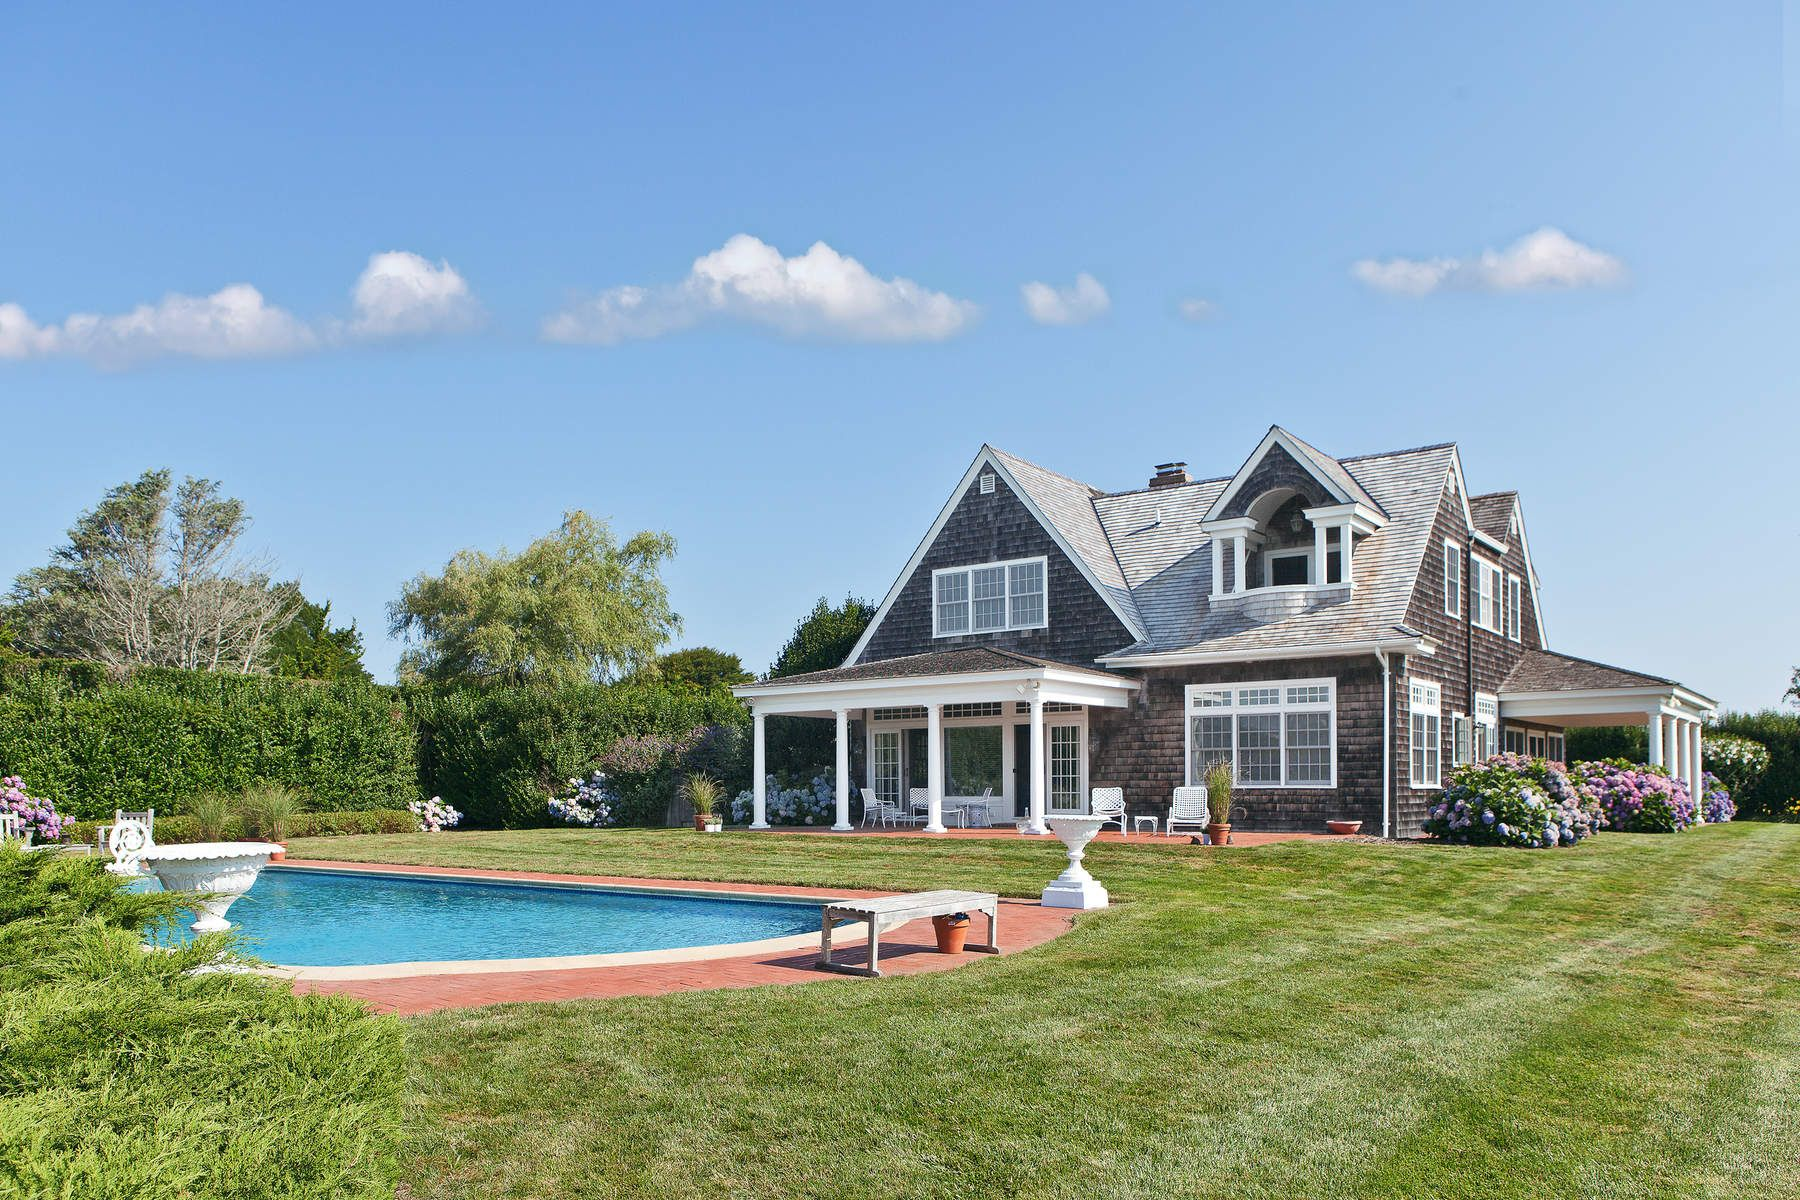 واحد منزل الأسرة للـ Sale في Oceanview Carriage House 132 Apaquogue Road, East Hampton, New York, 11937 United States